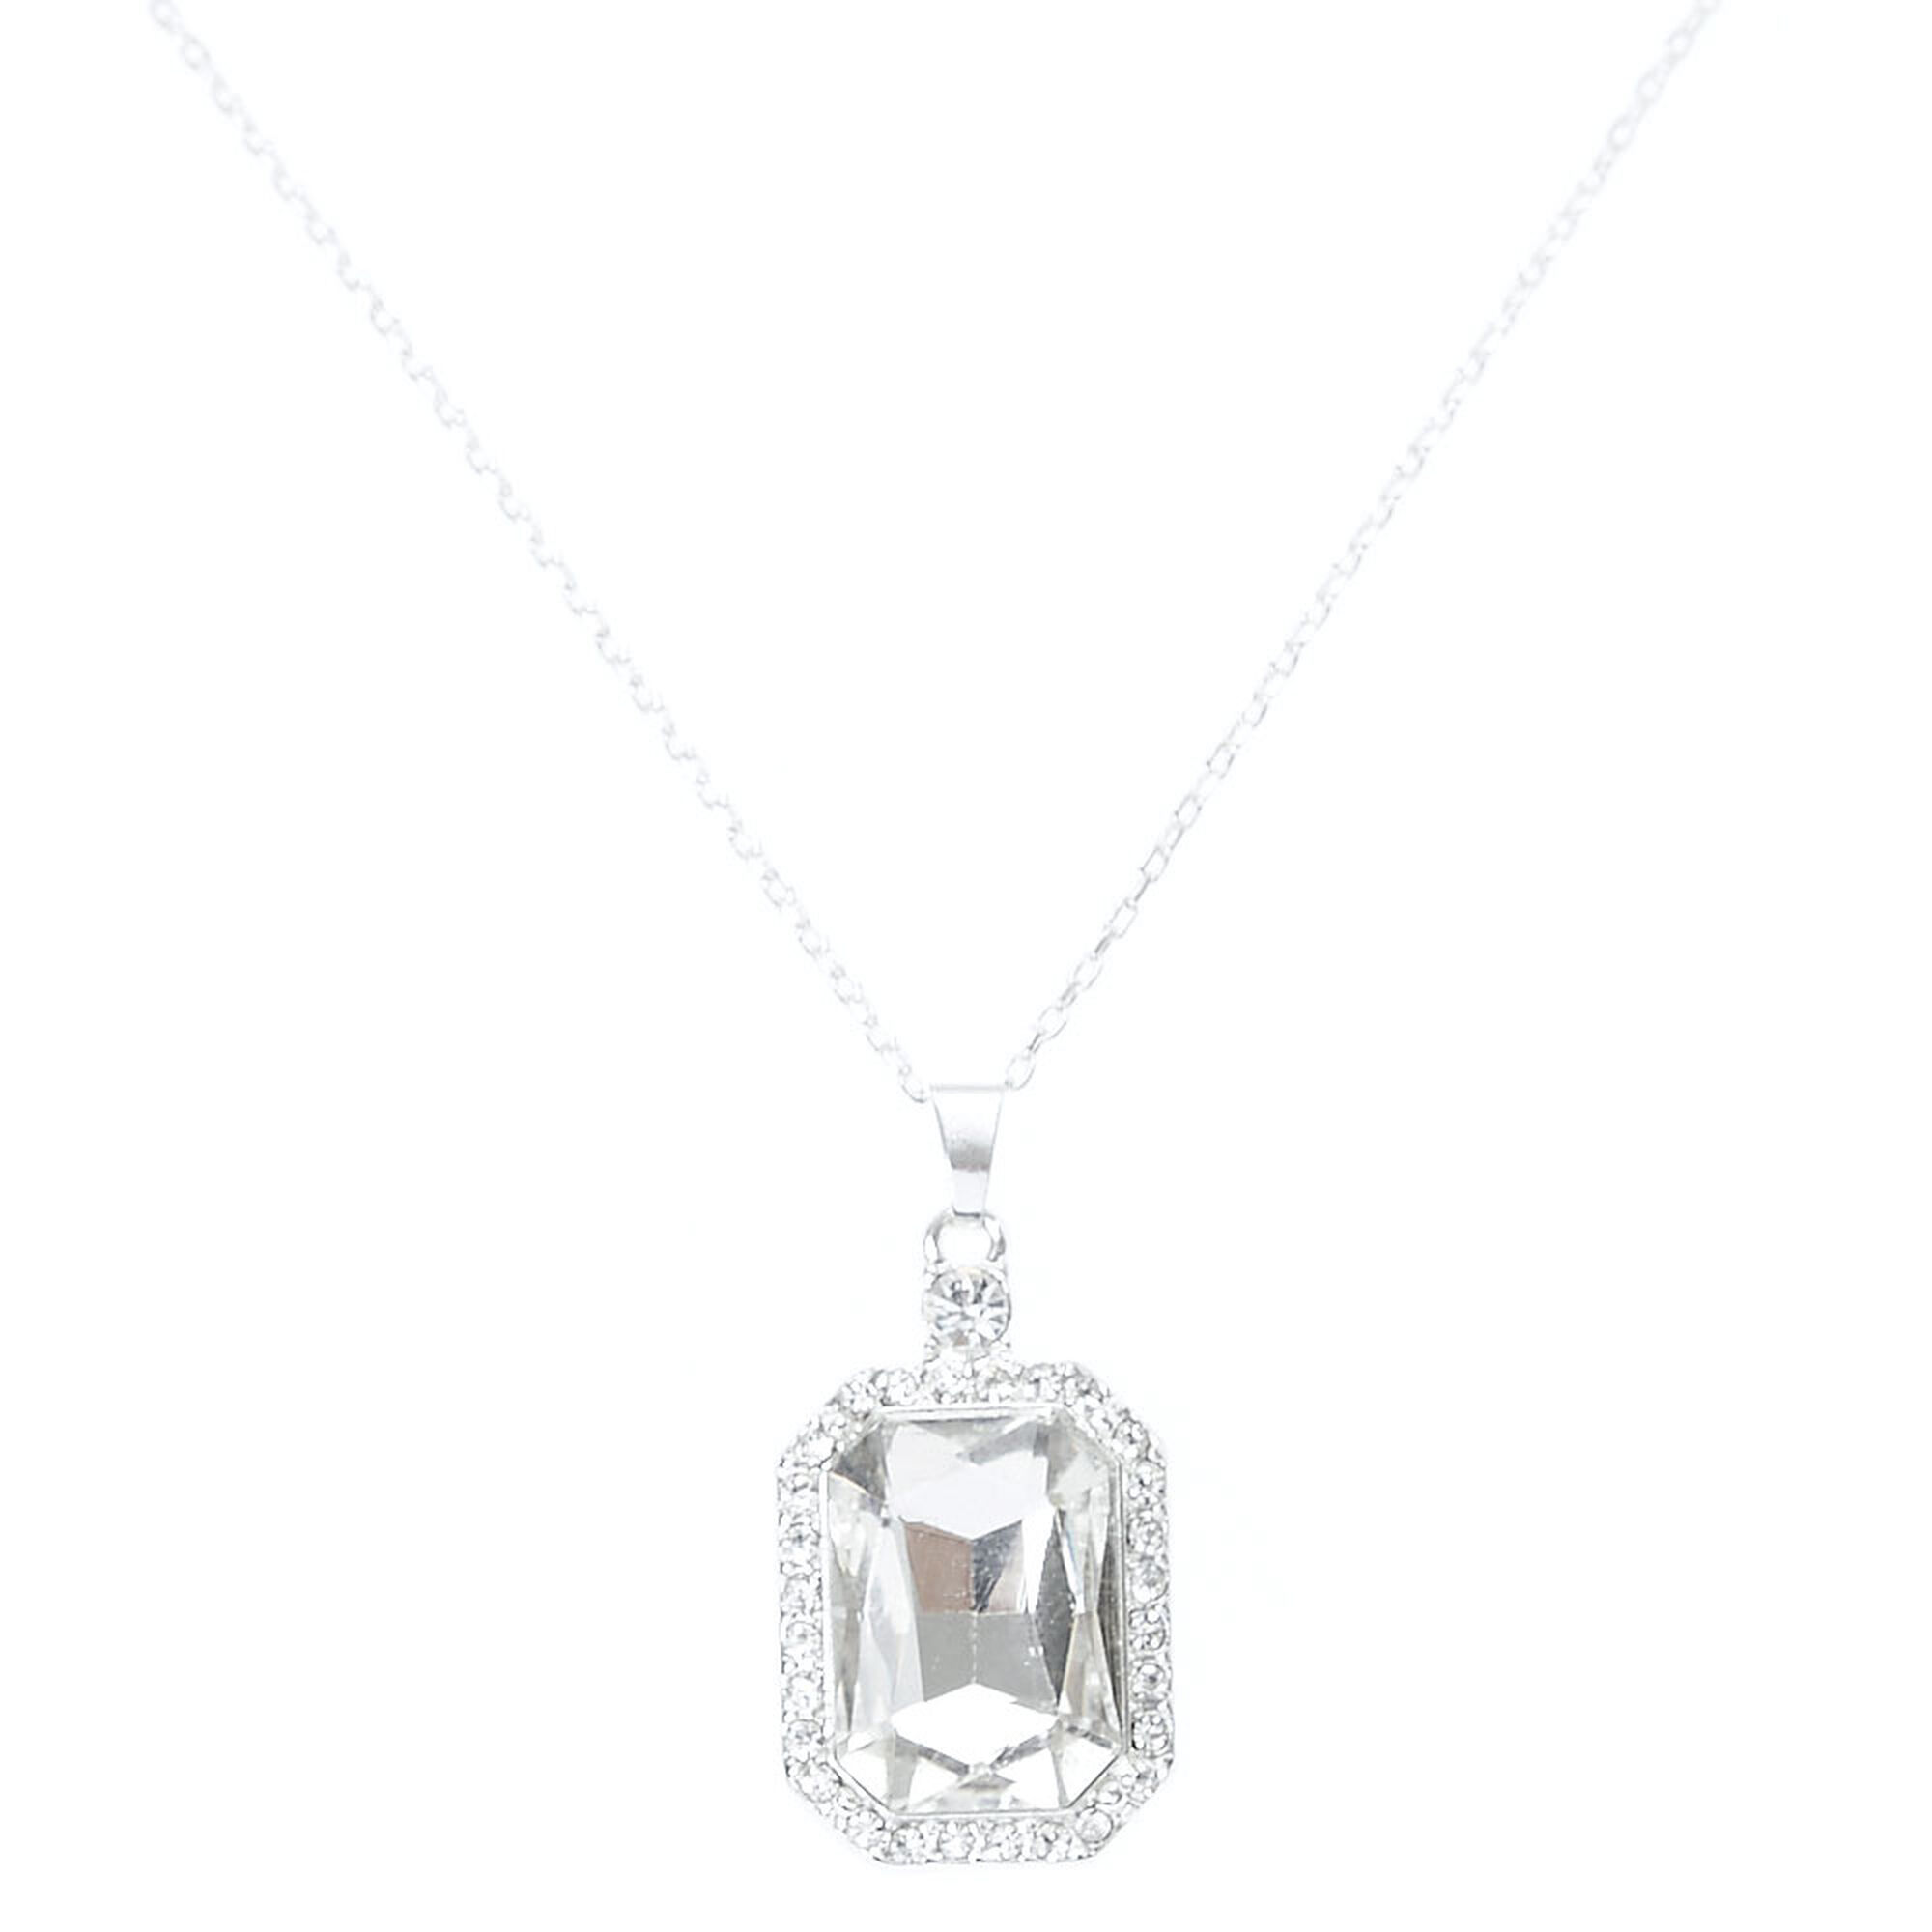 colombian stone product fullxfull necklace shape solitaire il pear pendant pave emerald white gold diamond